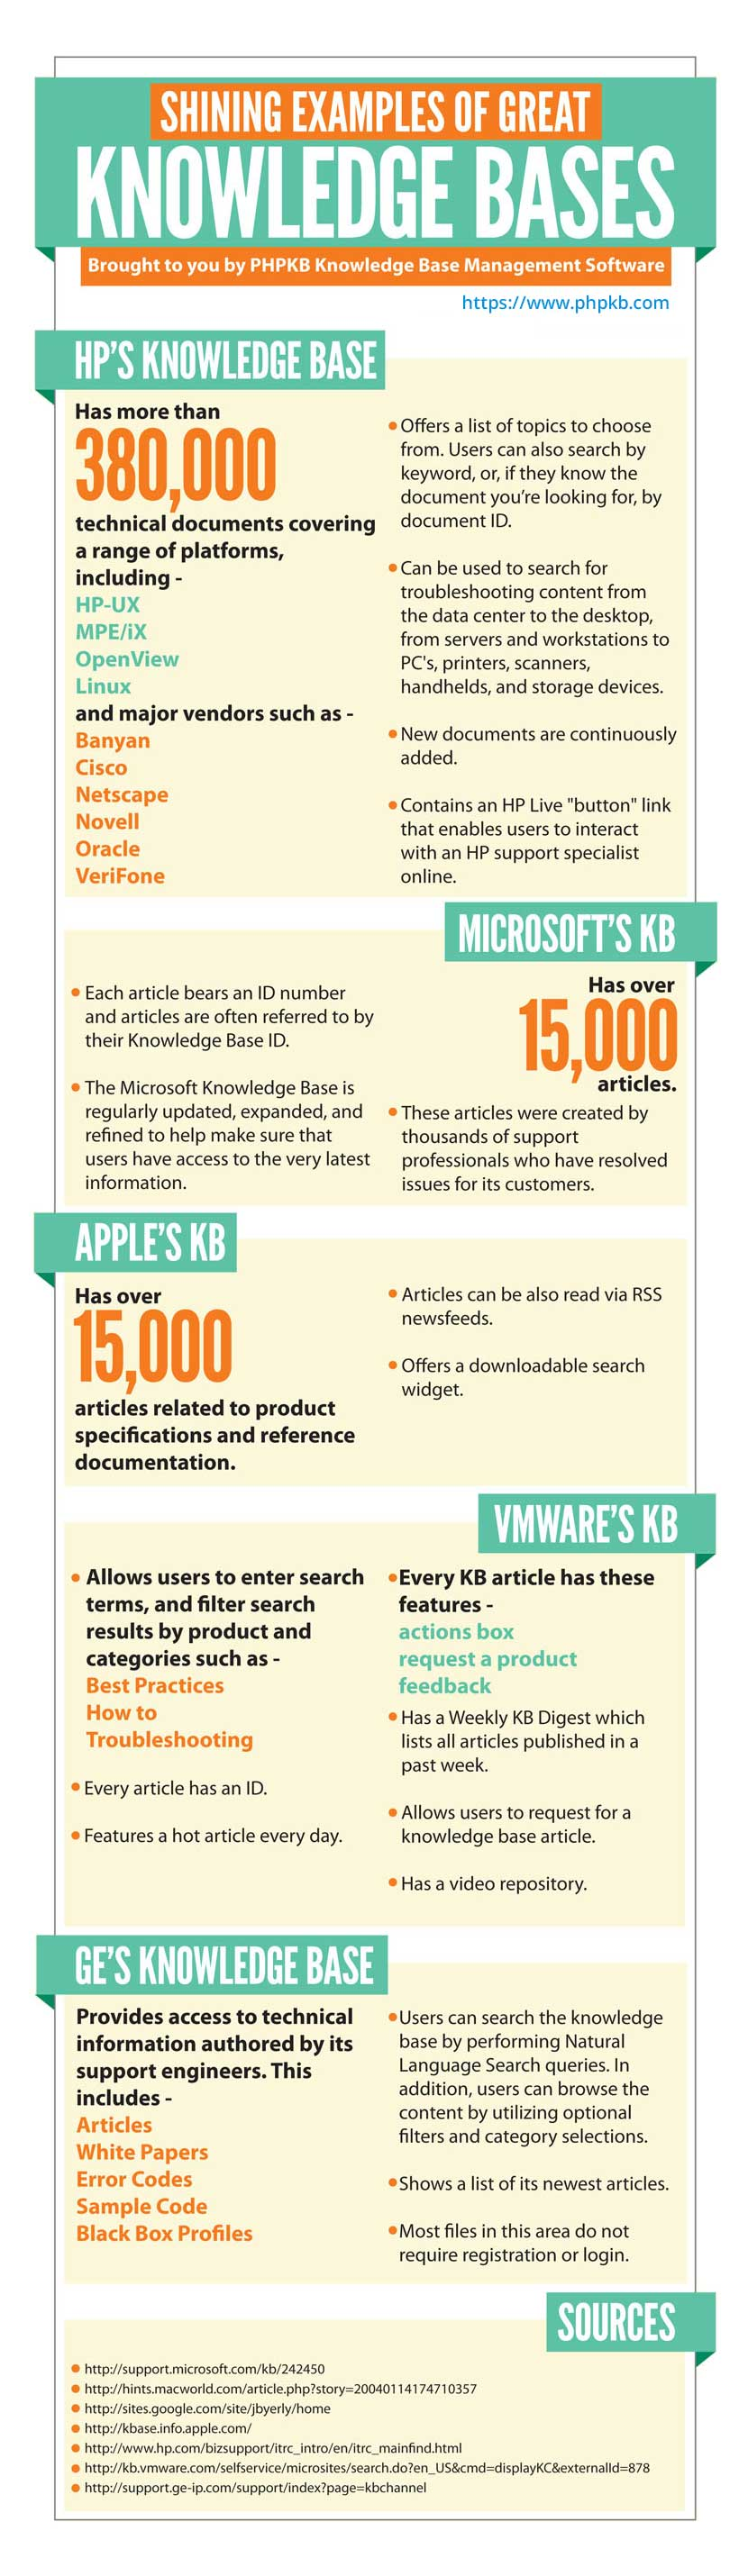 Knowledge Base Software Infographic